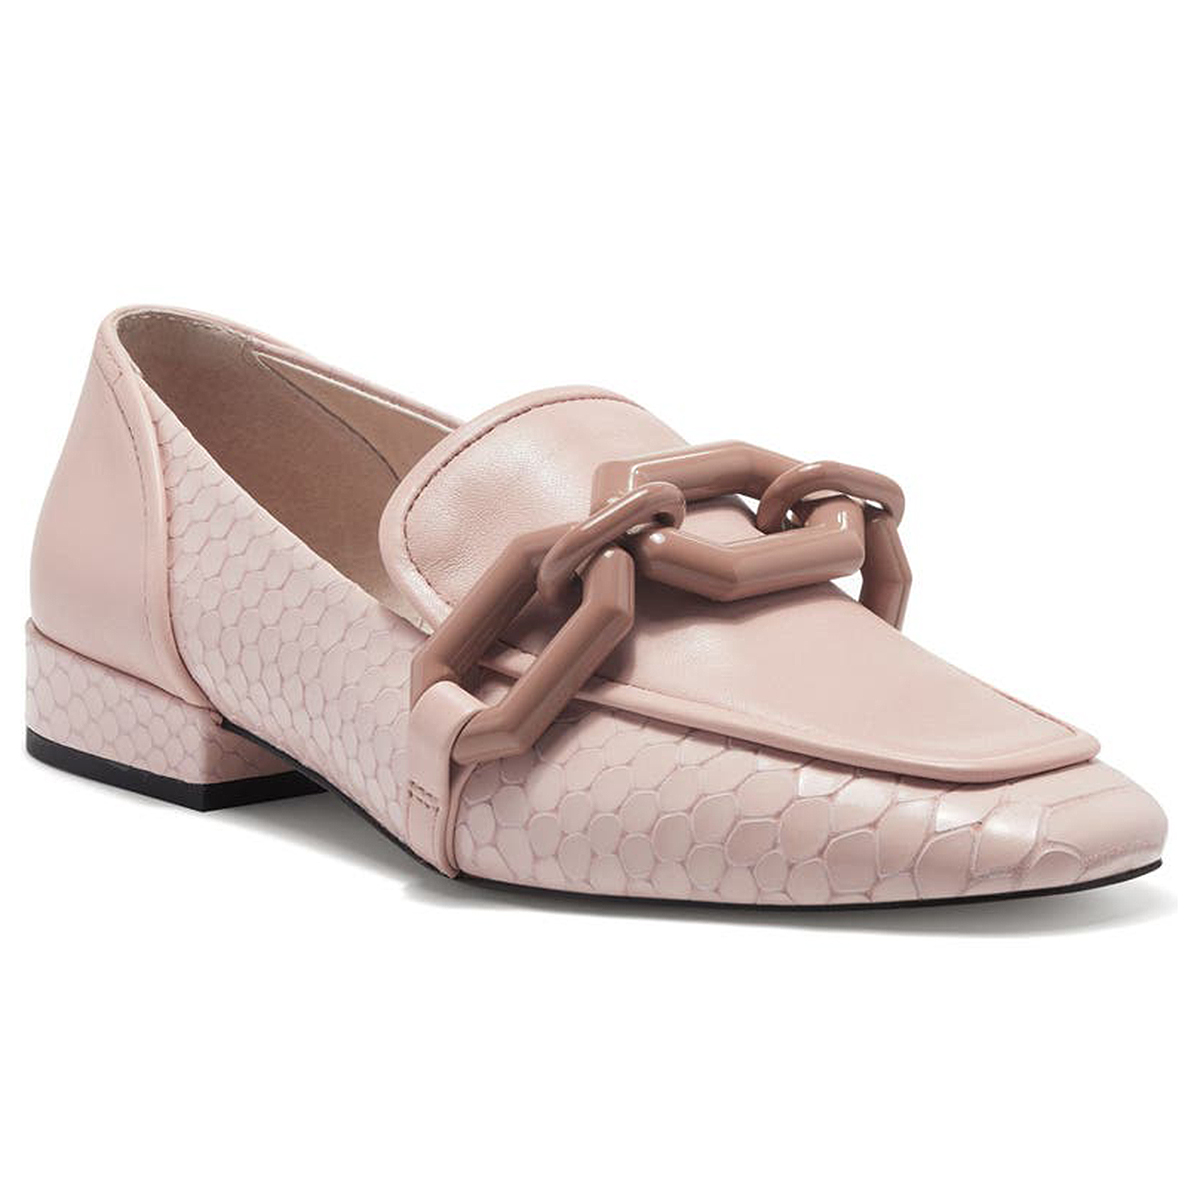 nordstrom-sale-chain-loafers-shoes